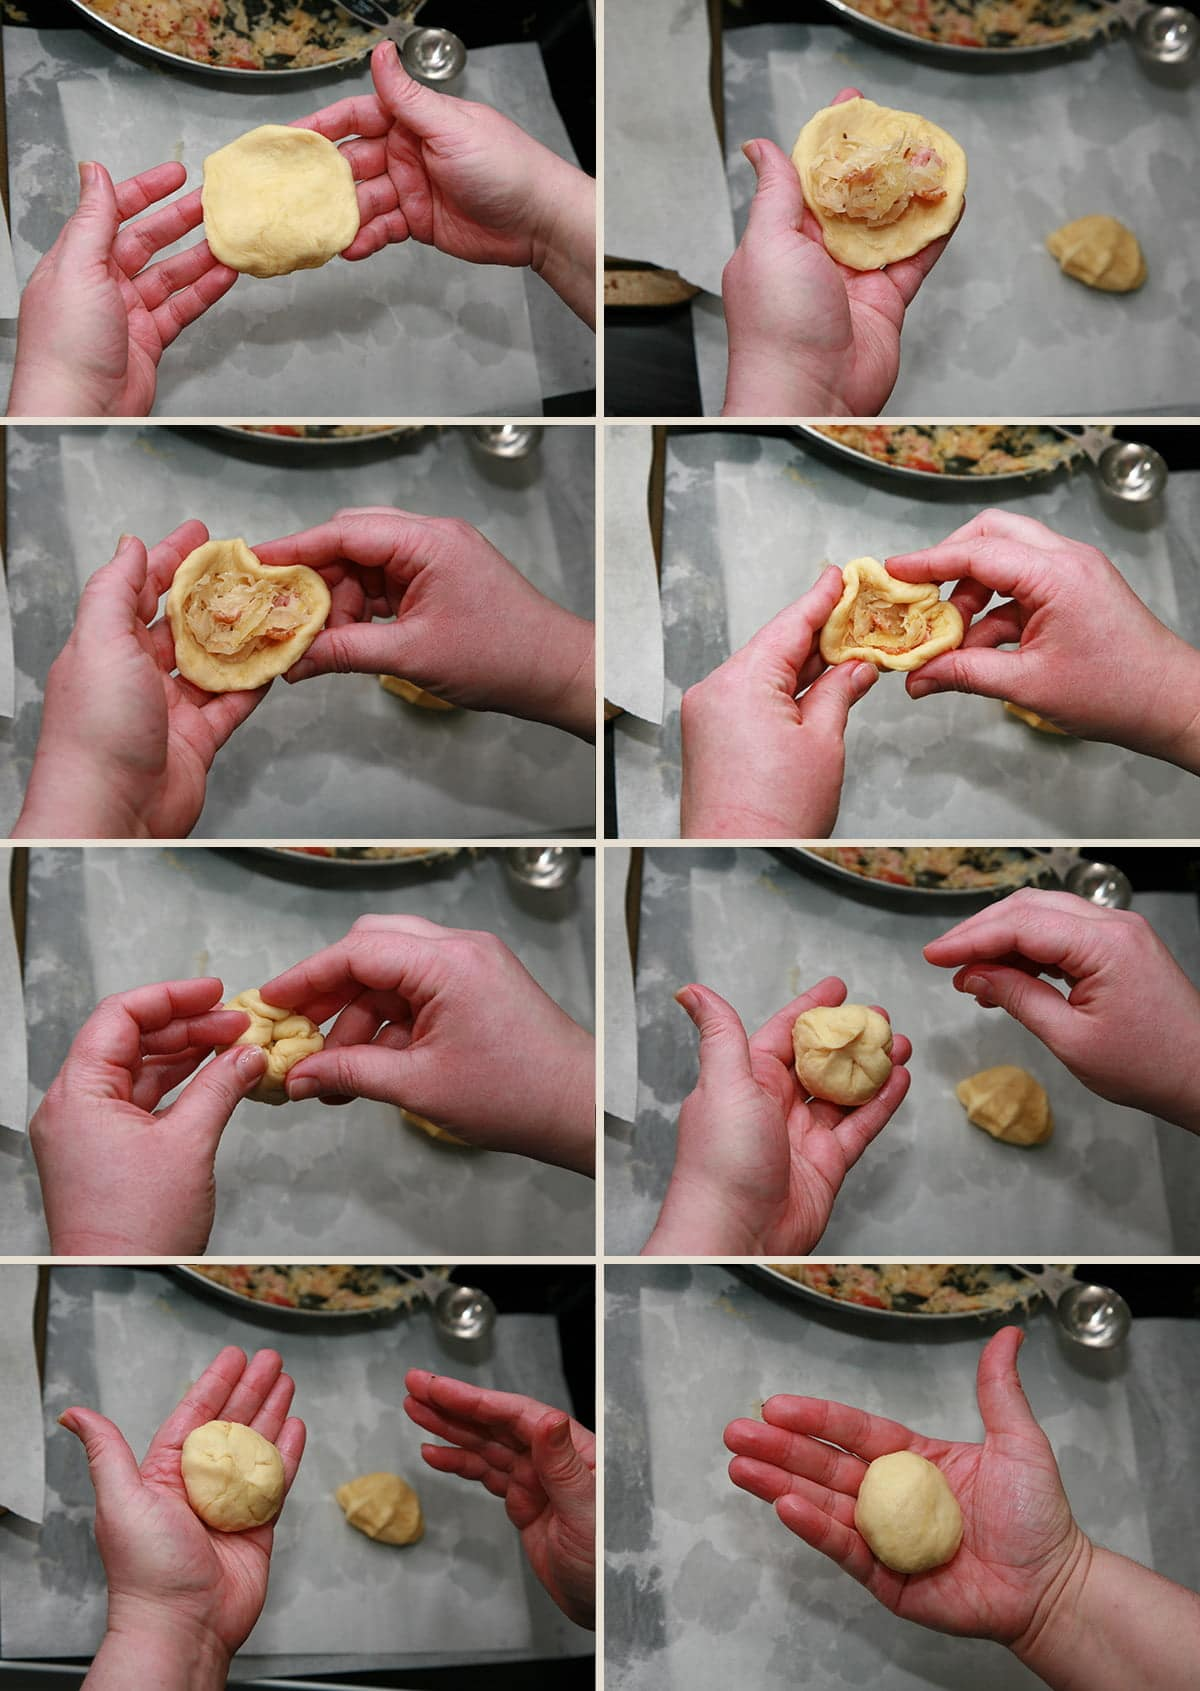 An 8 image collage of photos, demonstrating how to fill and roll the buns, per the instructions in the post.